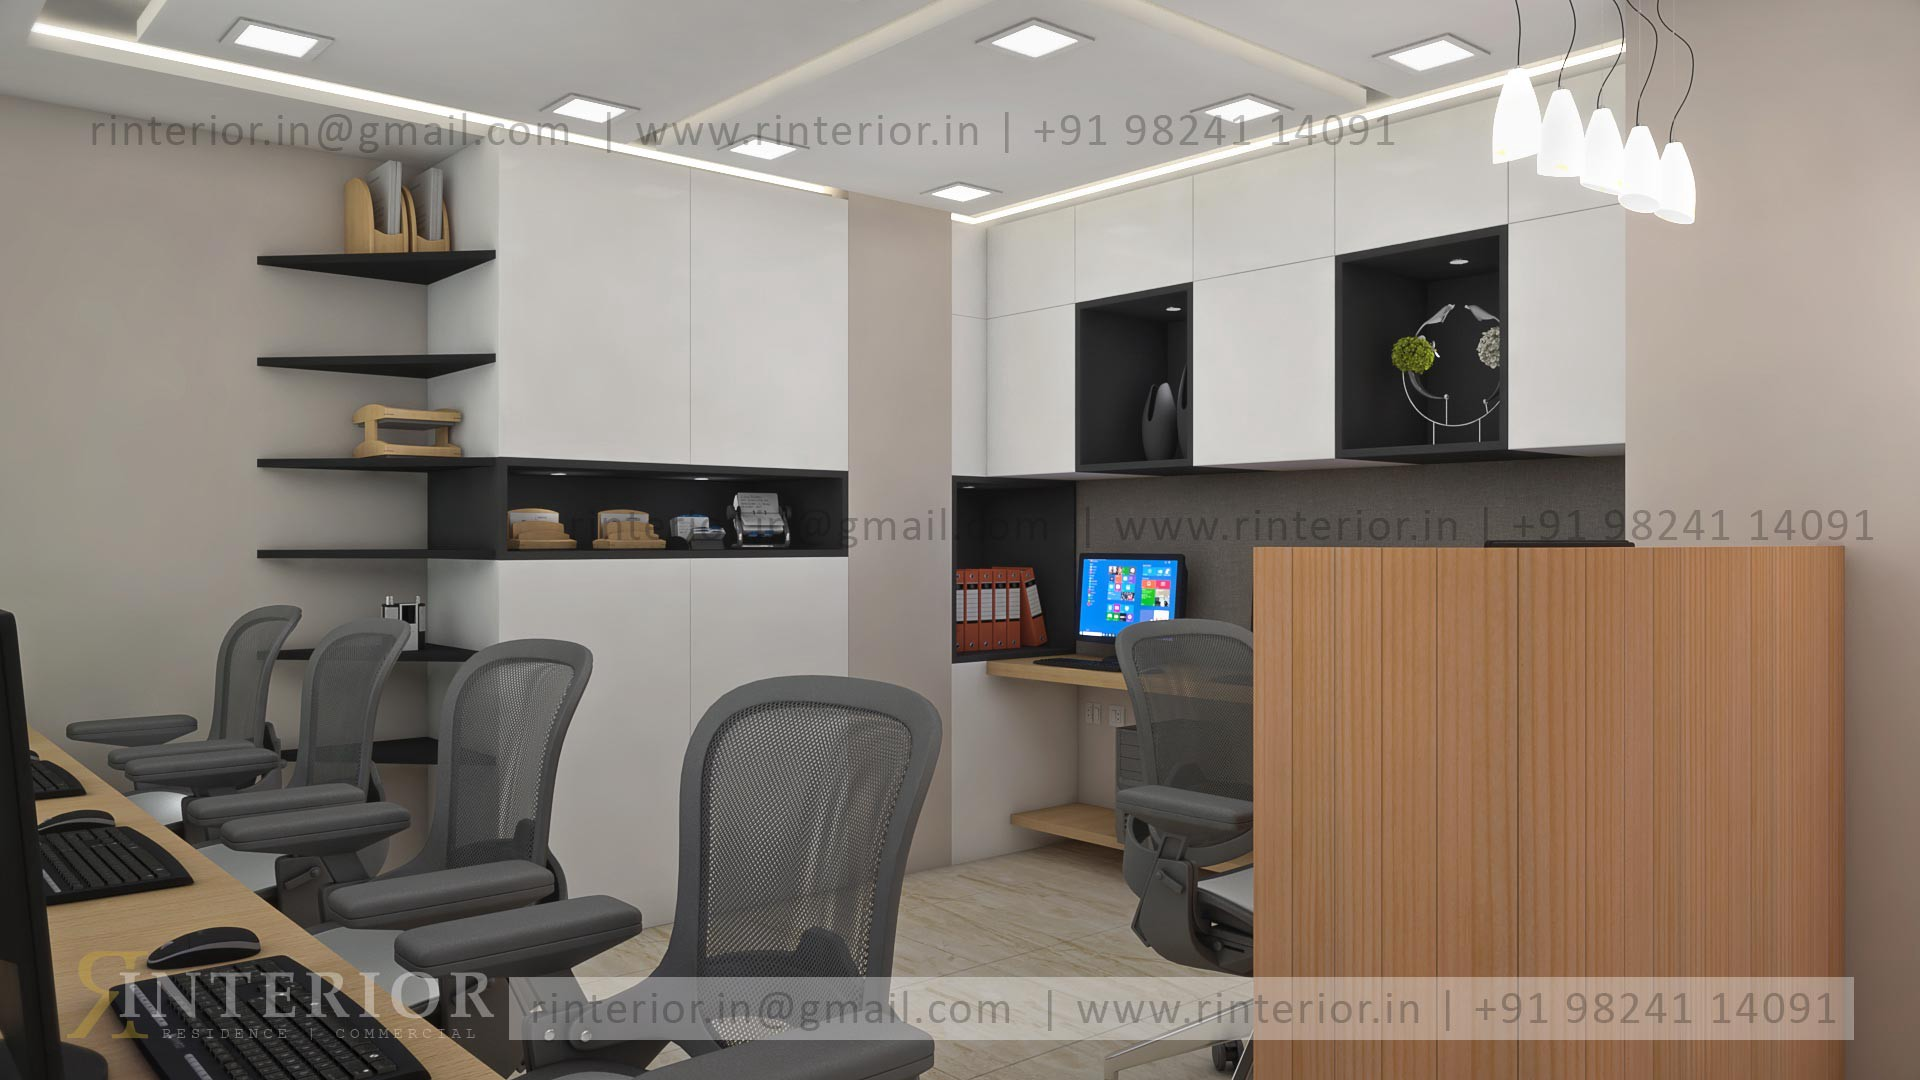 Find The Best Interior Design Portfolio In Ahmedabad By R Interior Medium